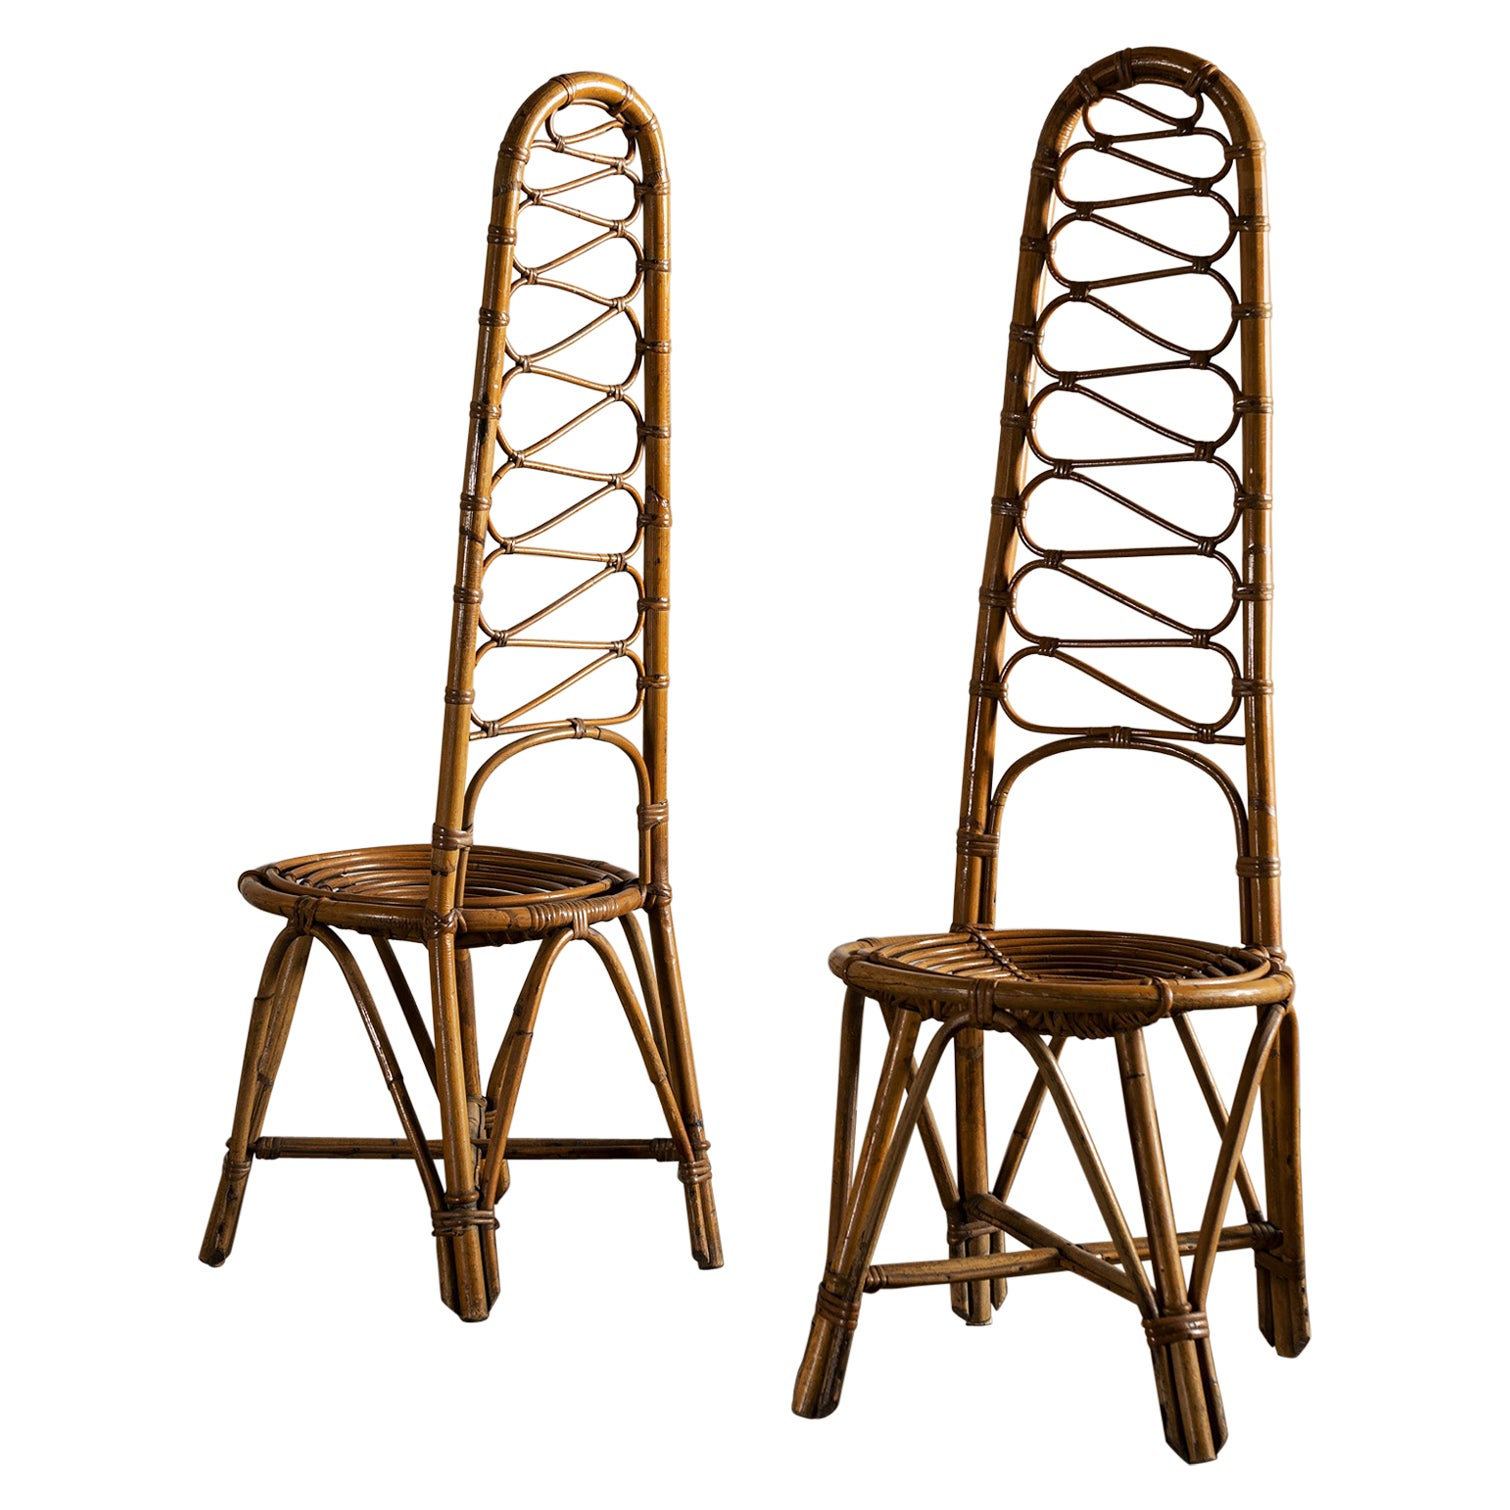 Pair of French Riviera Rattan and Bamboo Chairs, 1960s